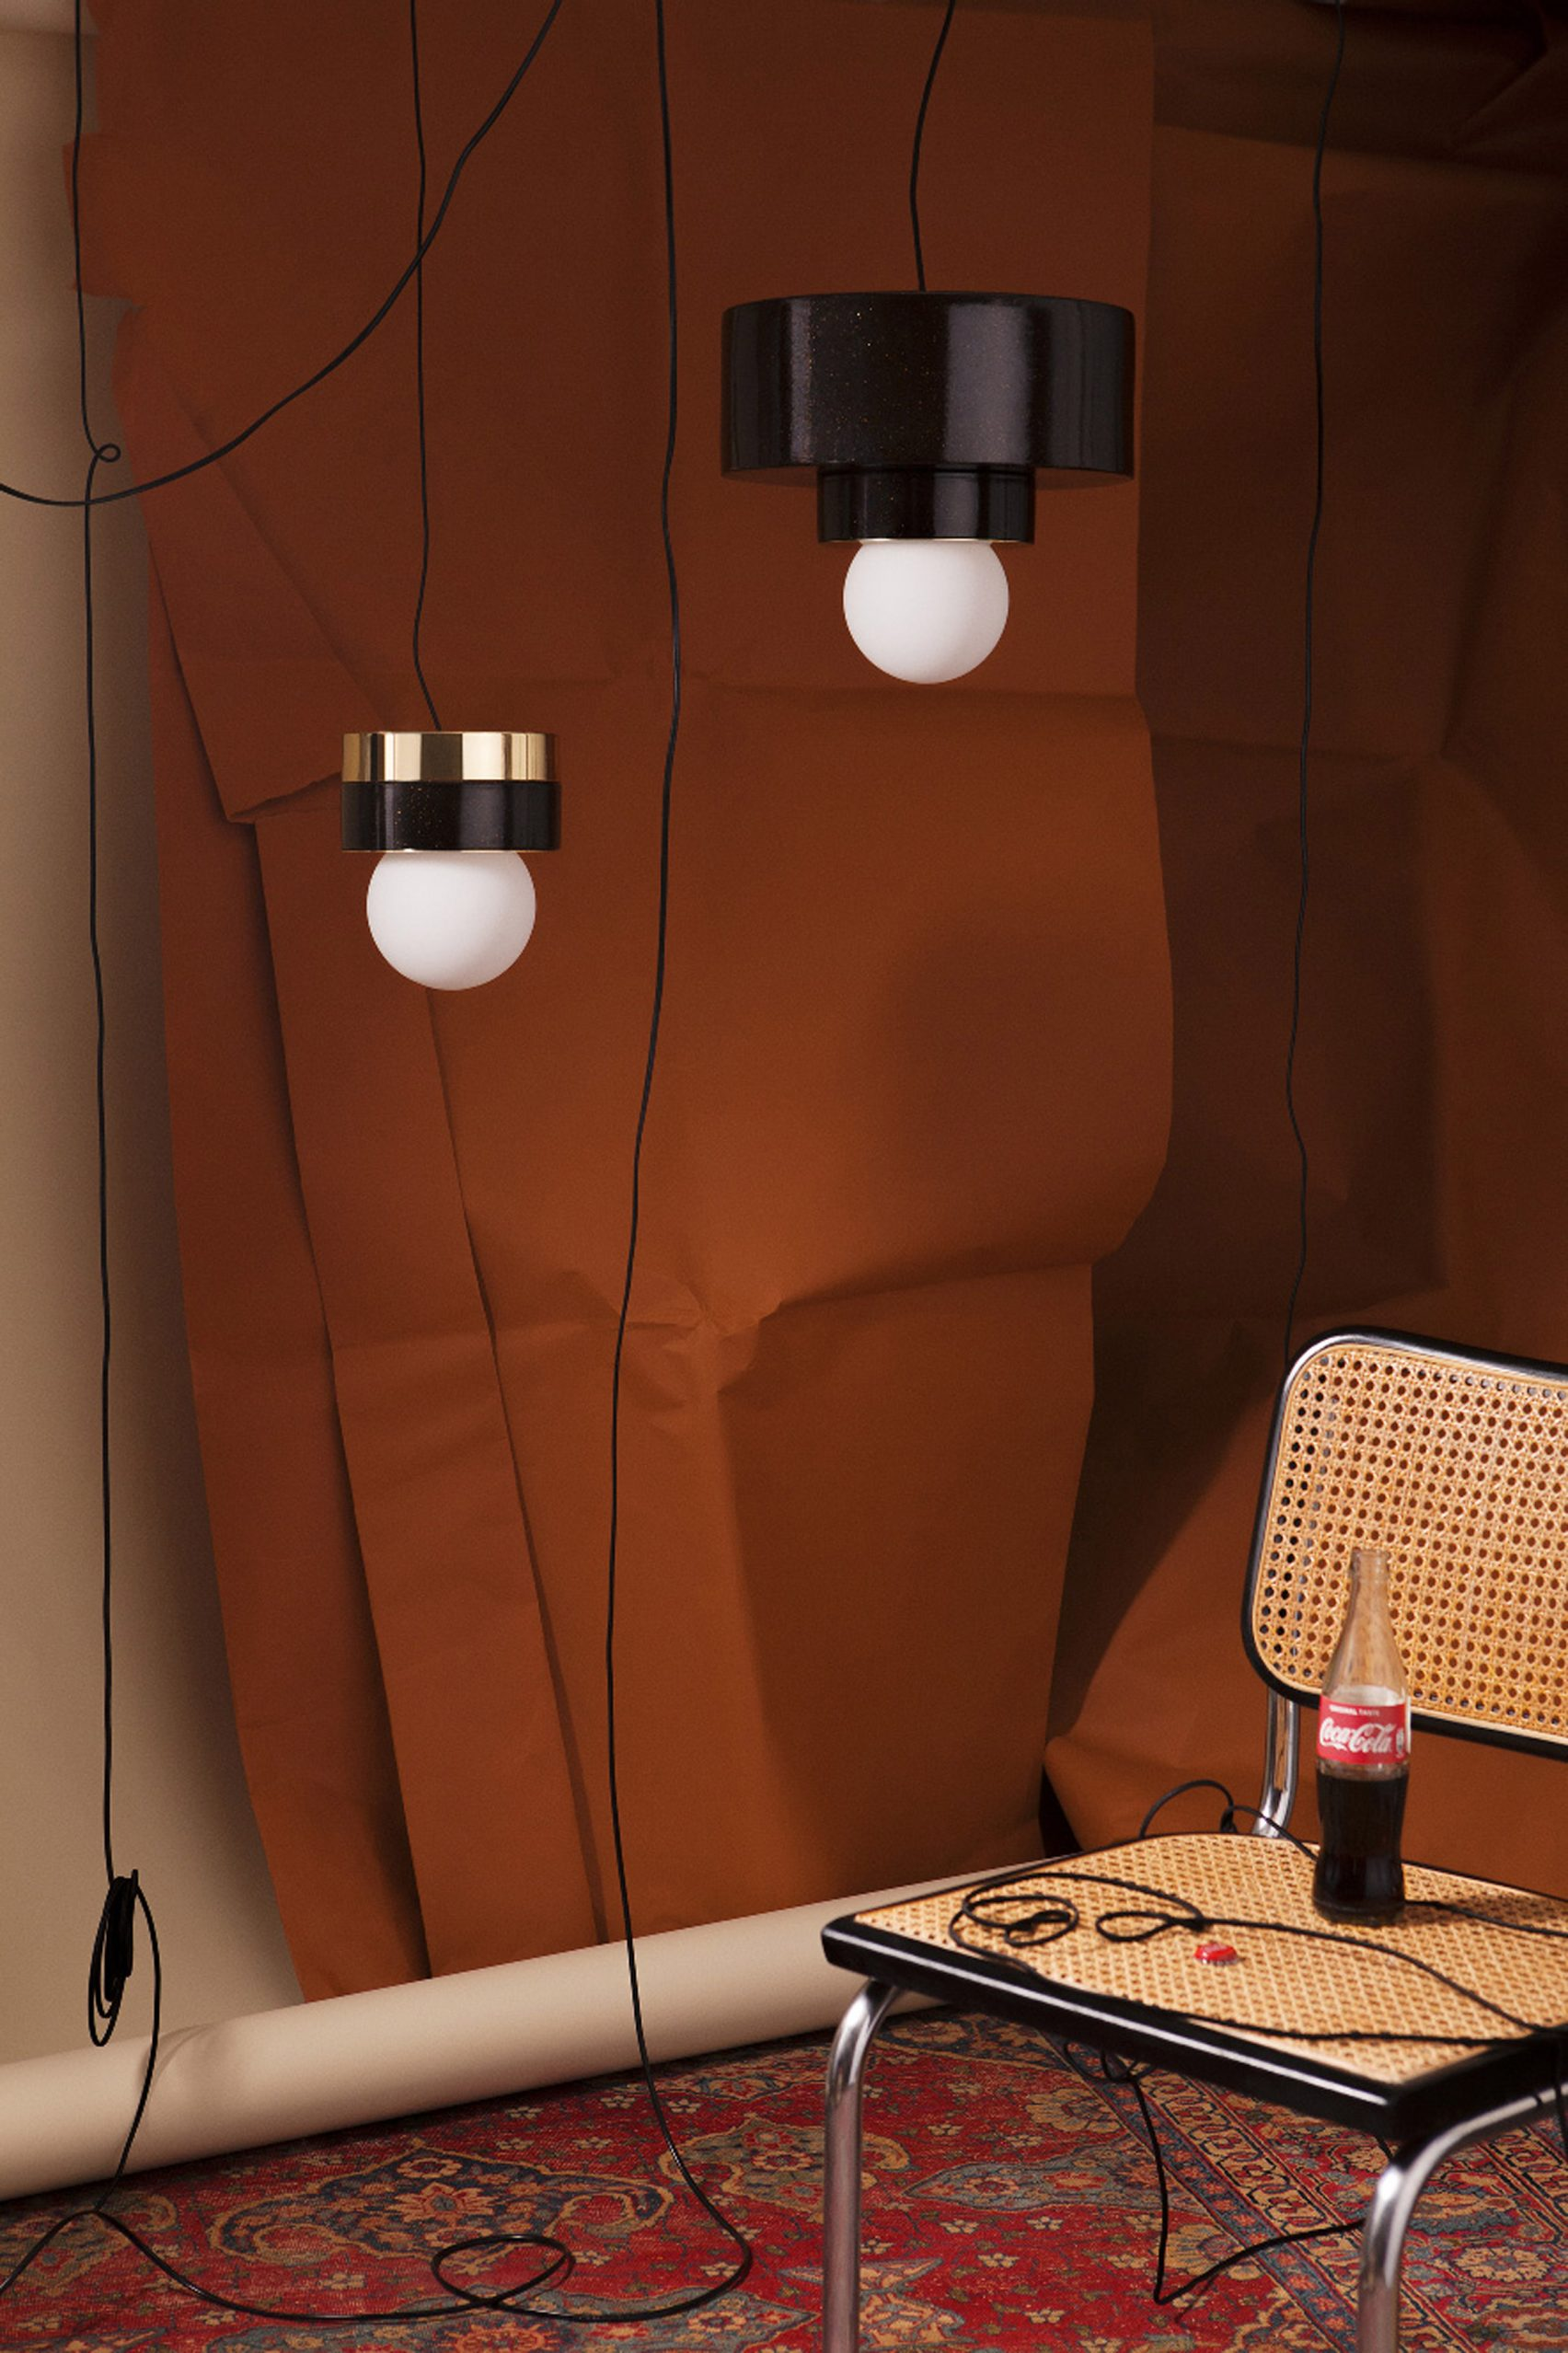 Meet Haos The Collection Of Circular Lamps You Need To See! 2